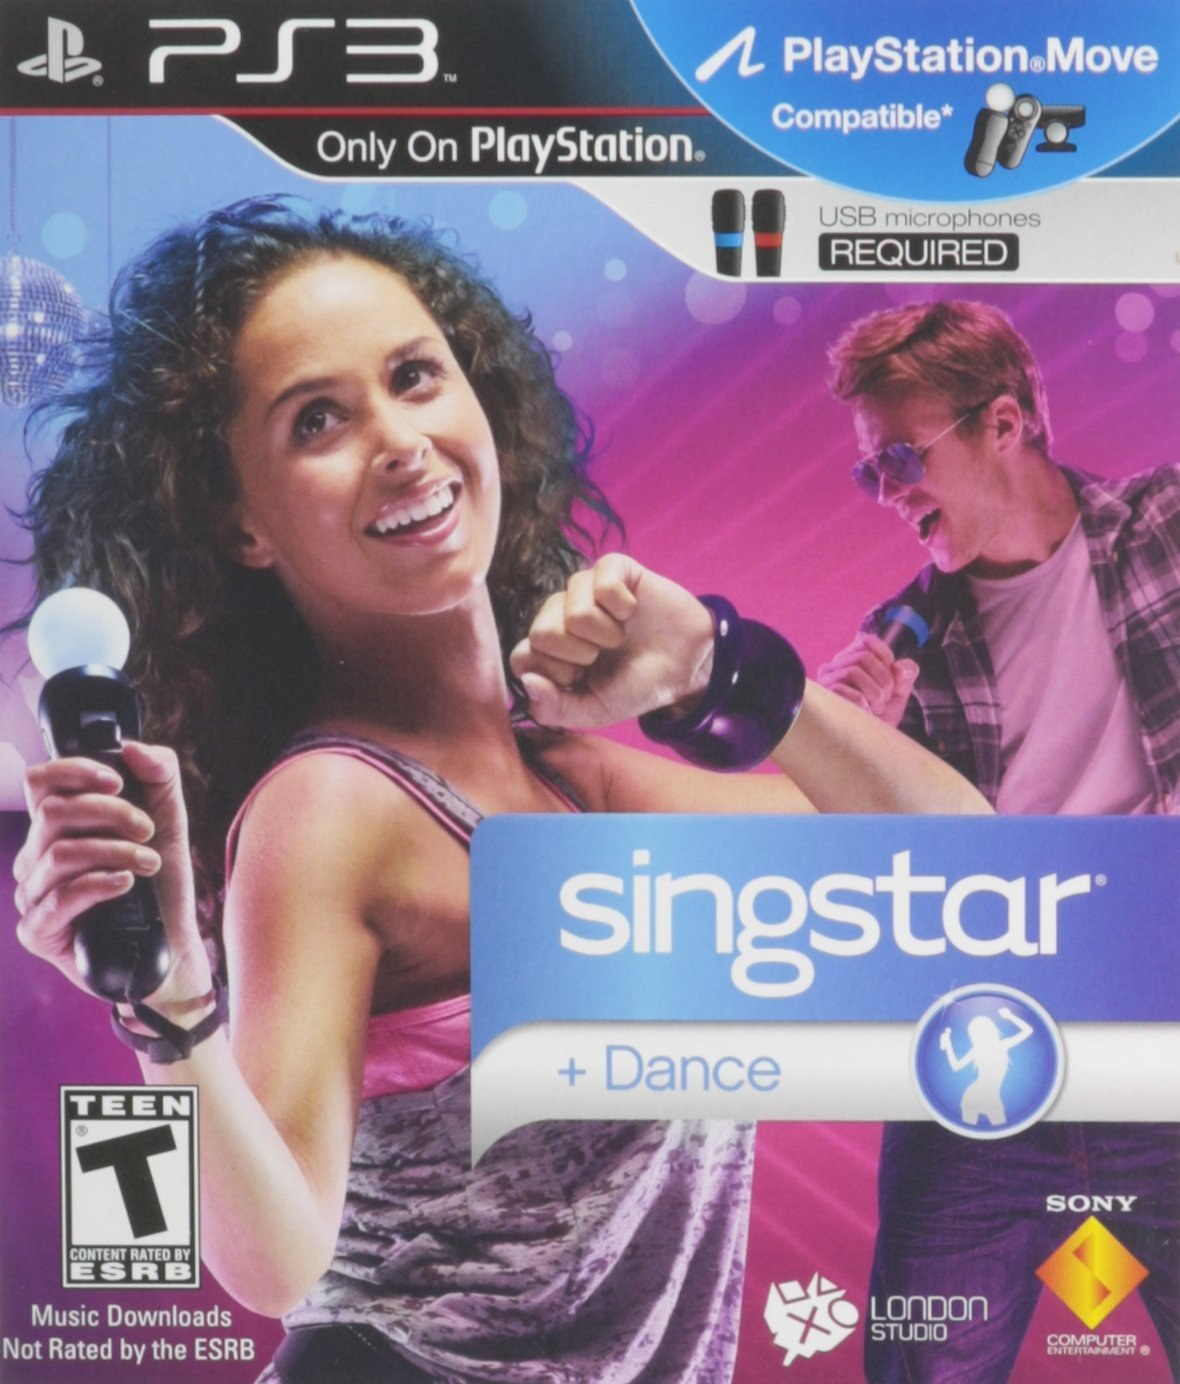 SingStar Dance Game Only